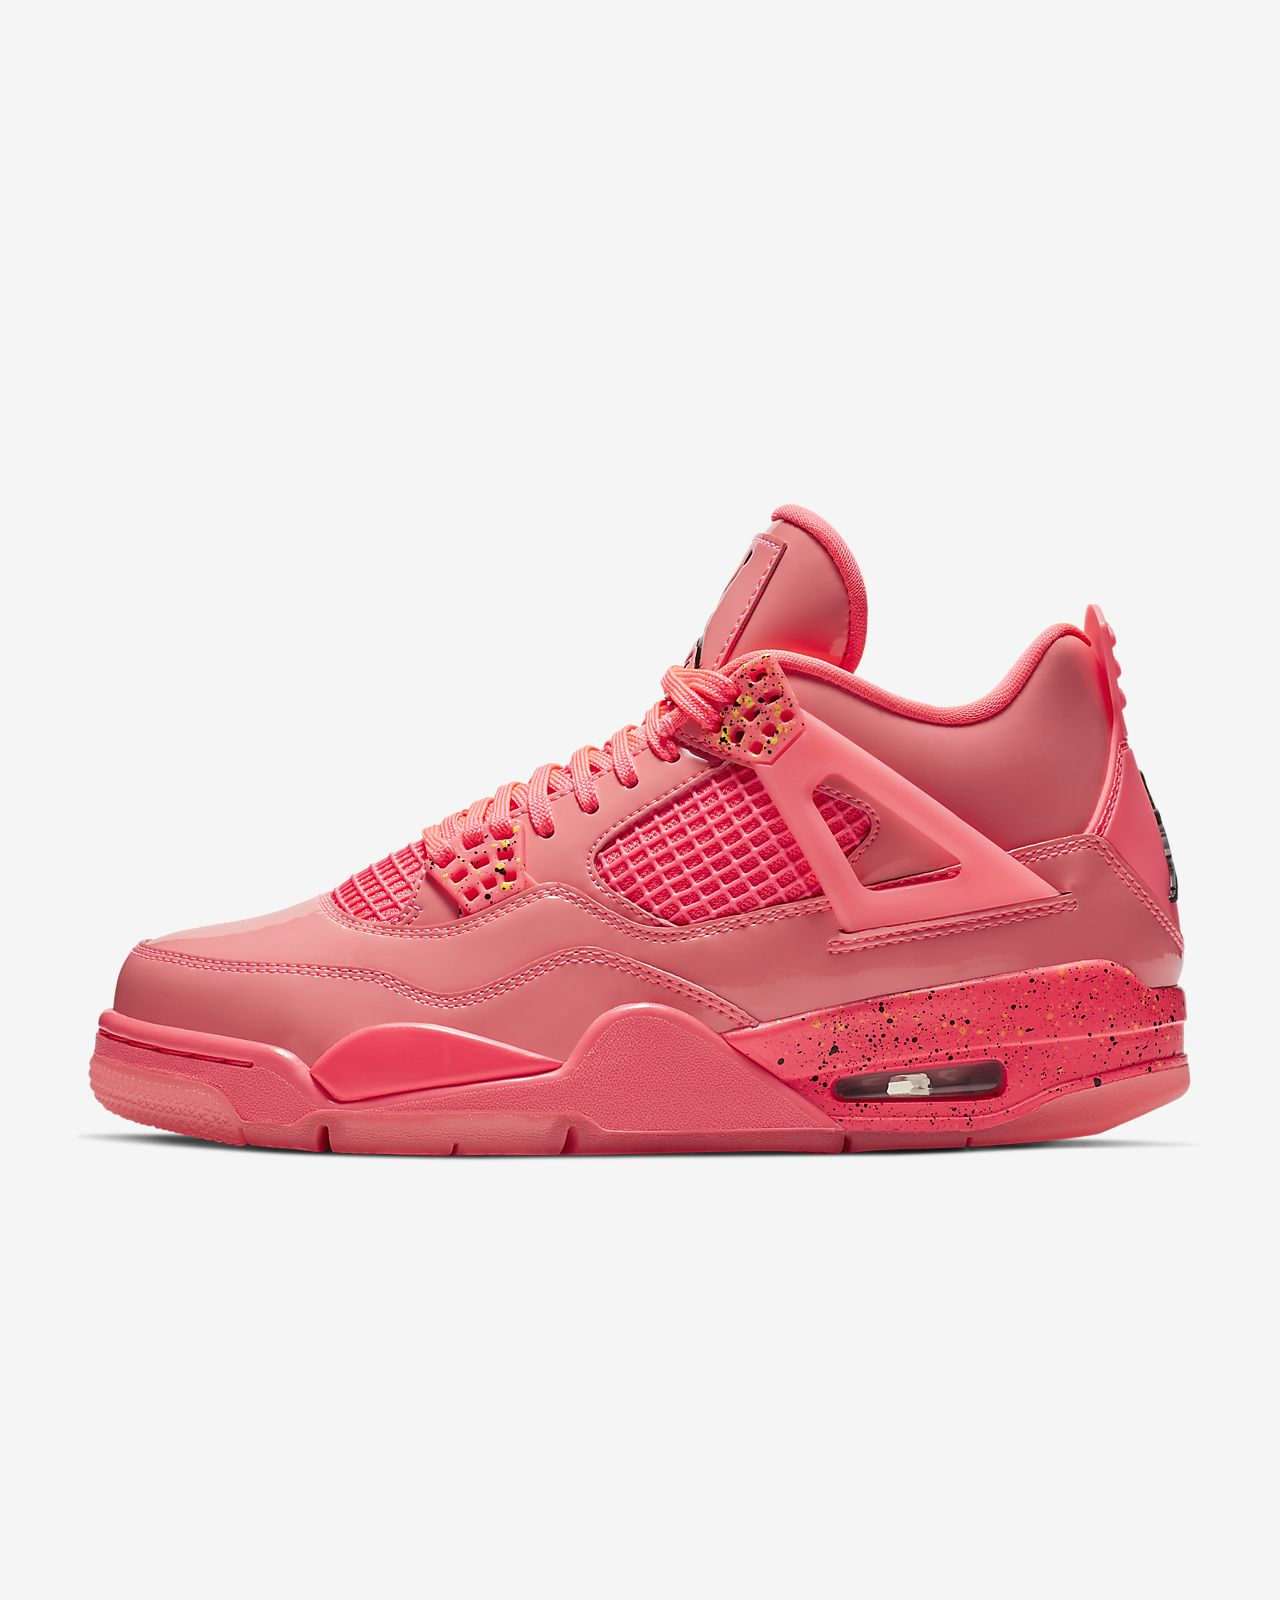 417a6139401 Air Jordan 4 Retro NRG Women's Shoe. Nike.com